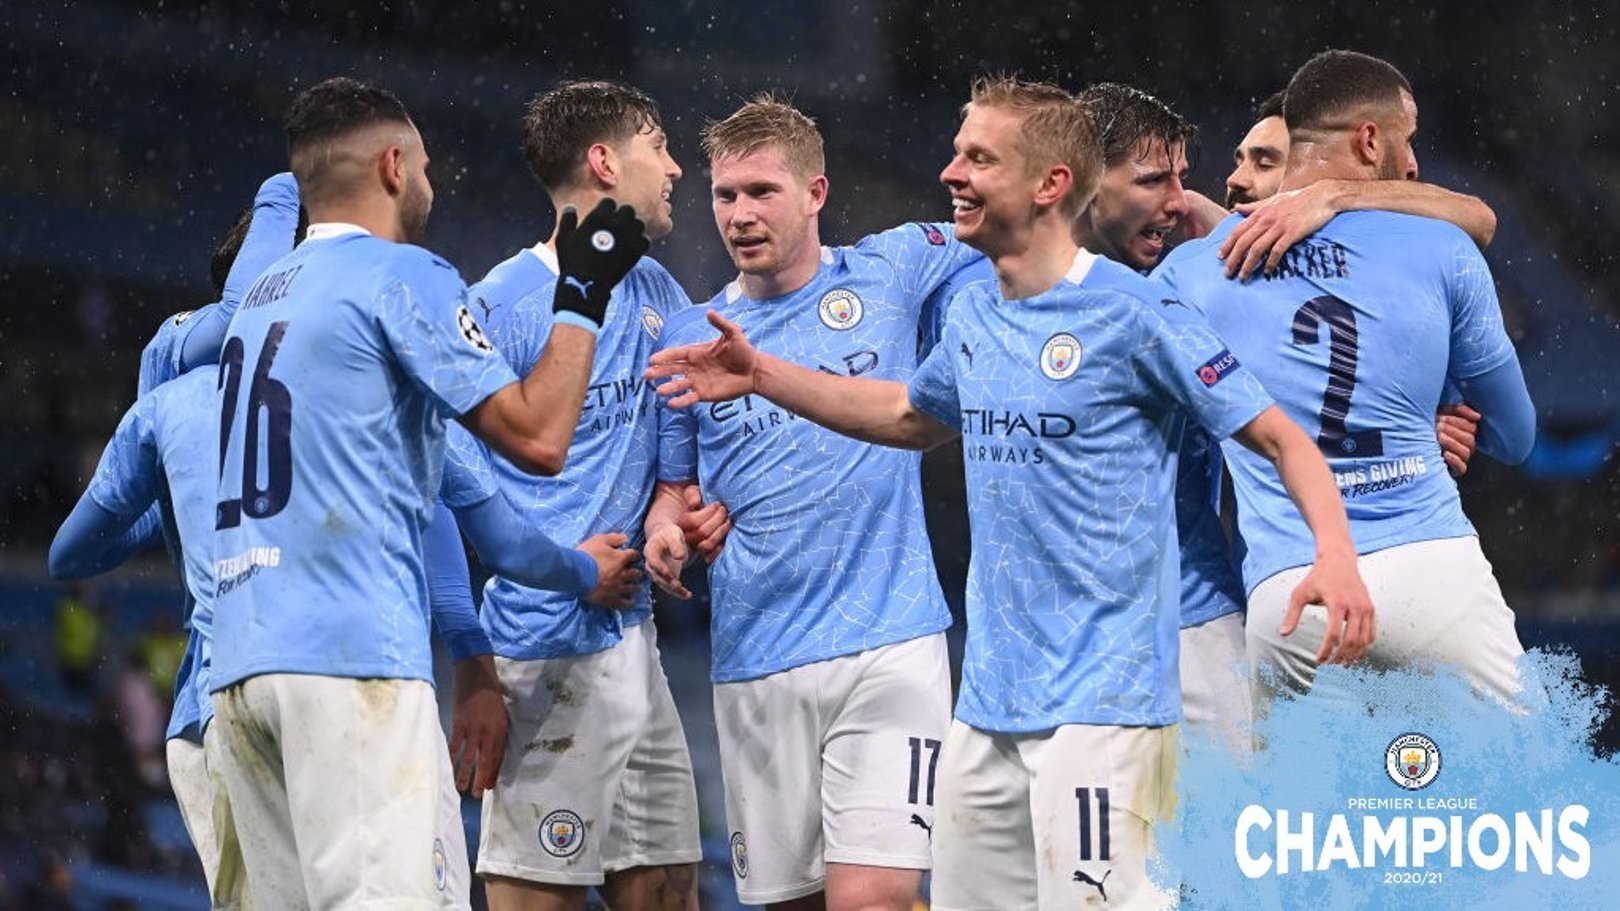 Winter: City's title this season will go down as one of the great achievements